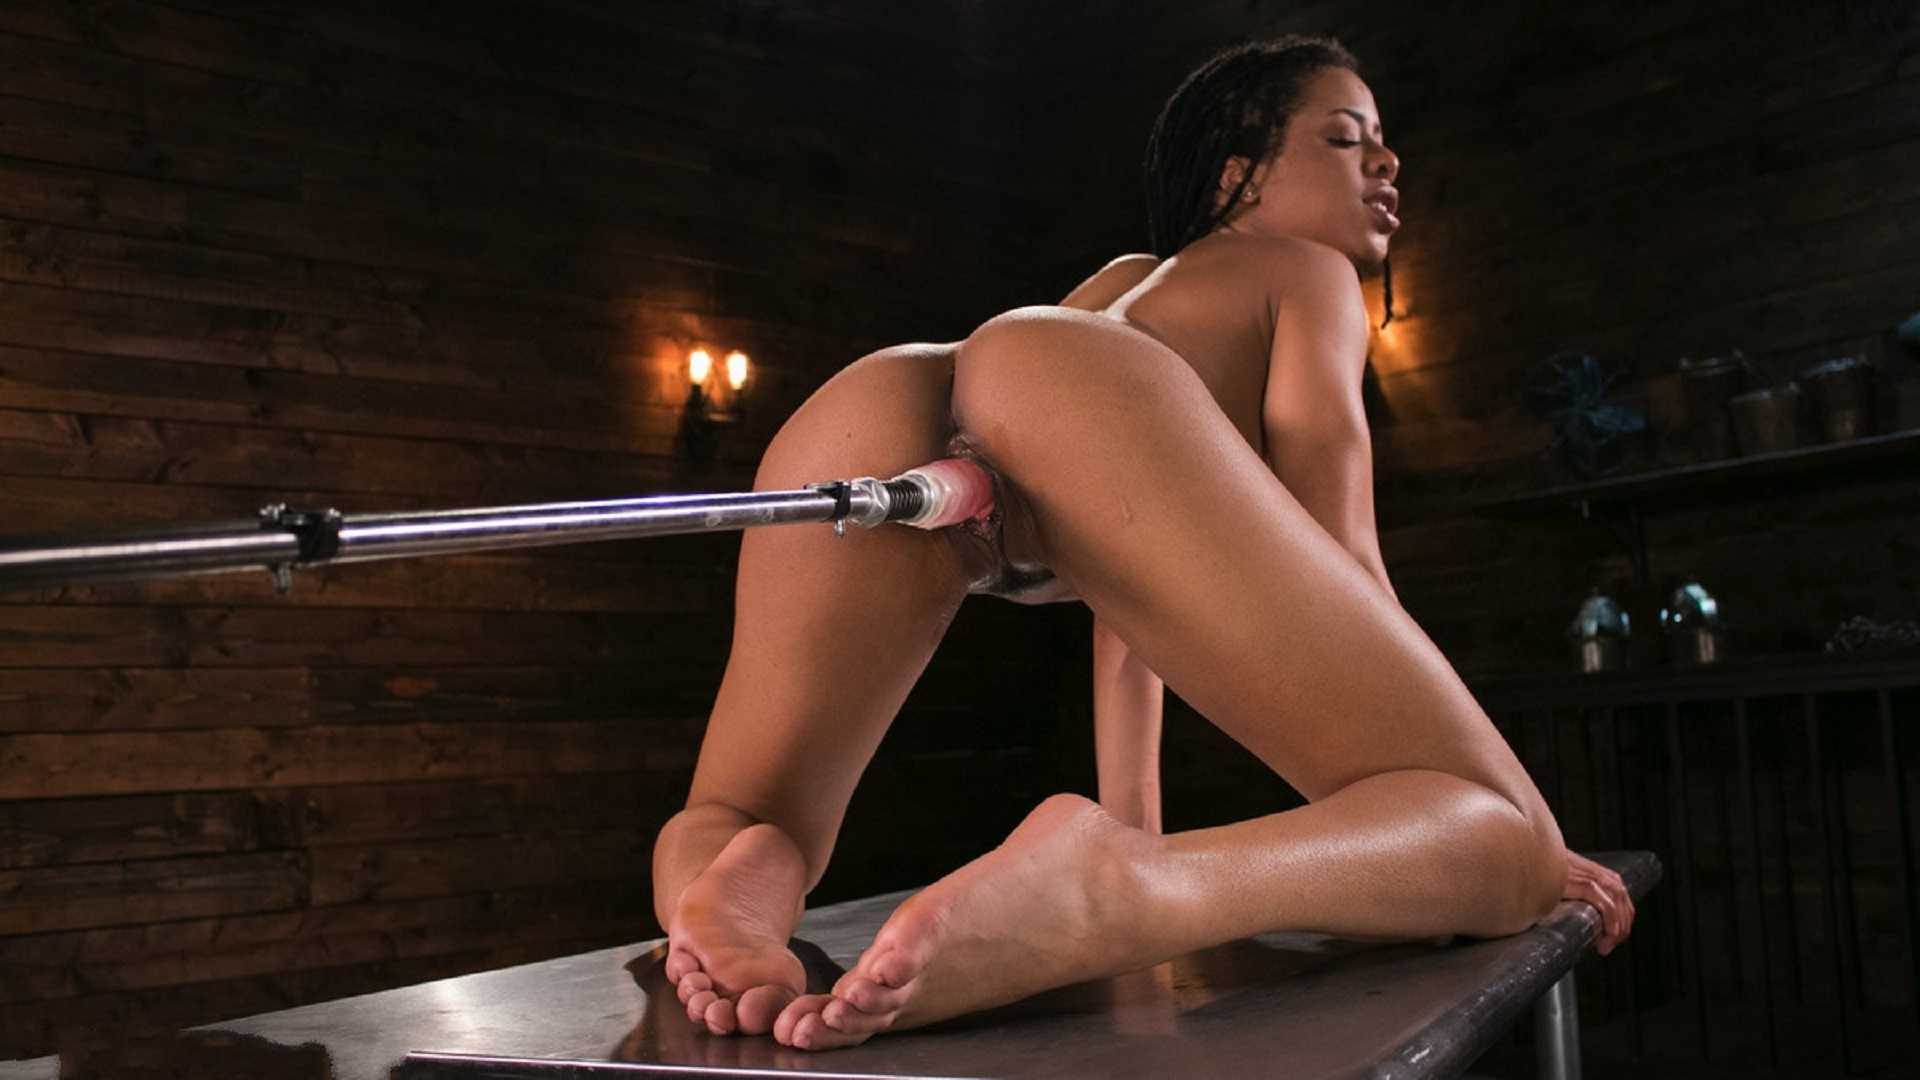 Young and Athletic Ebony Bombshell Gets an Anal Machine-Fucking | HD 720p | June 7, 2017